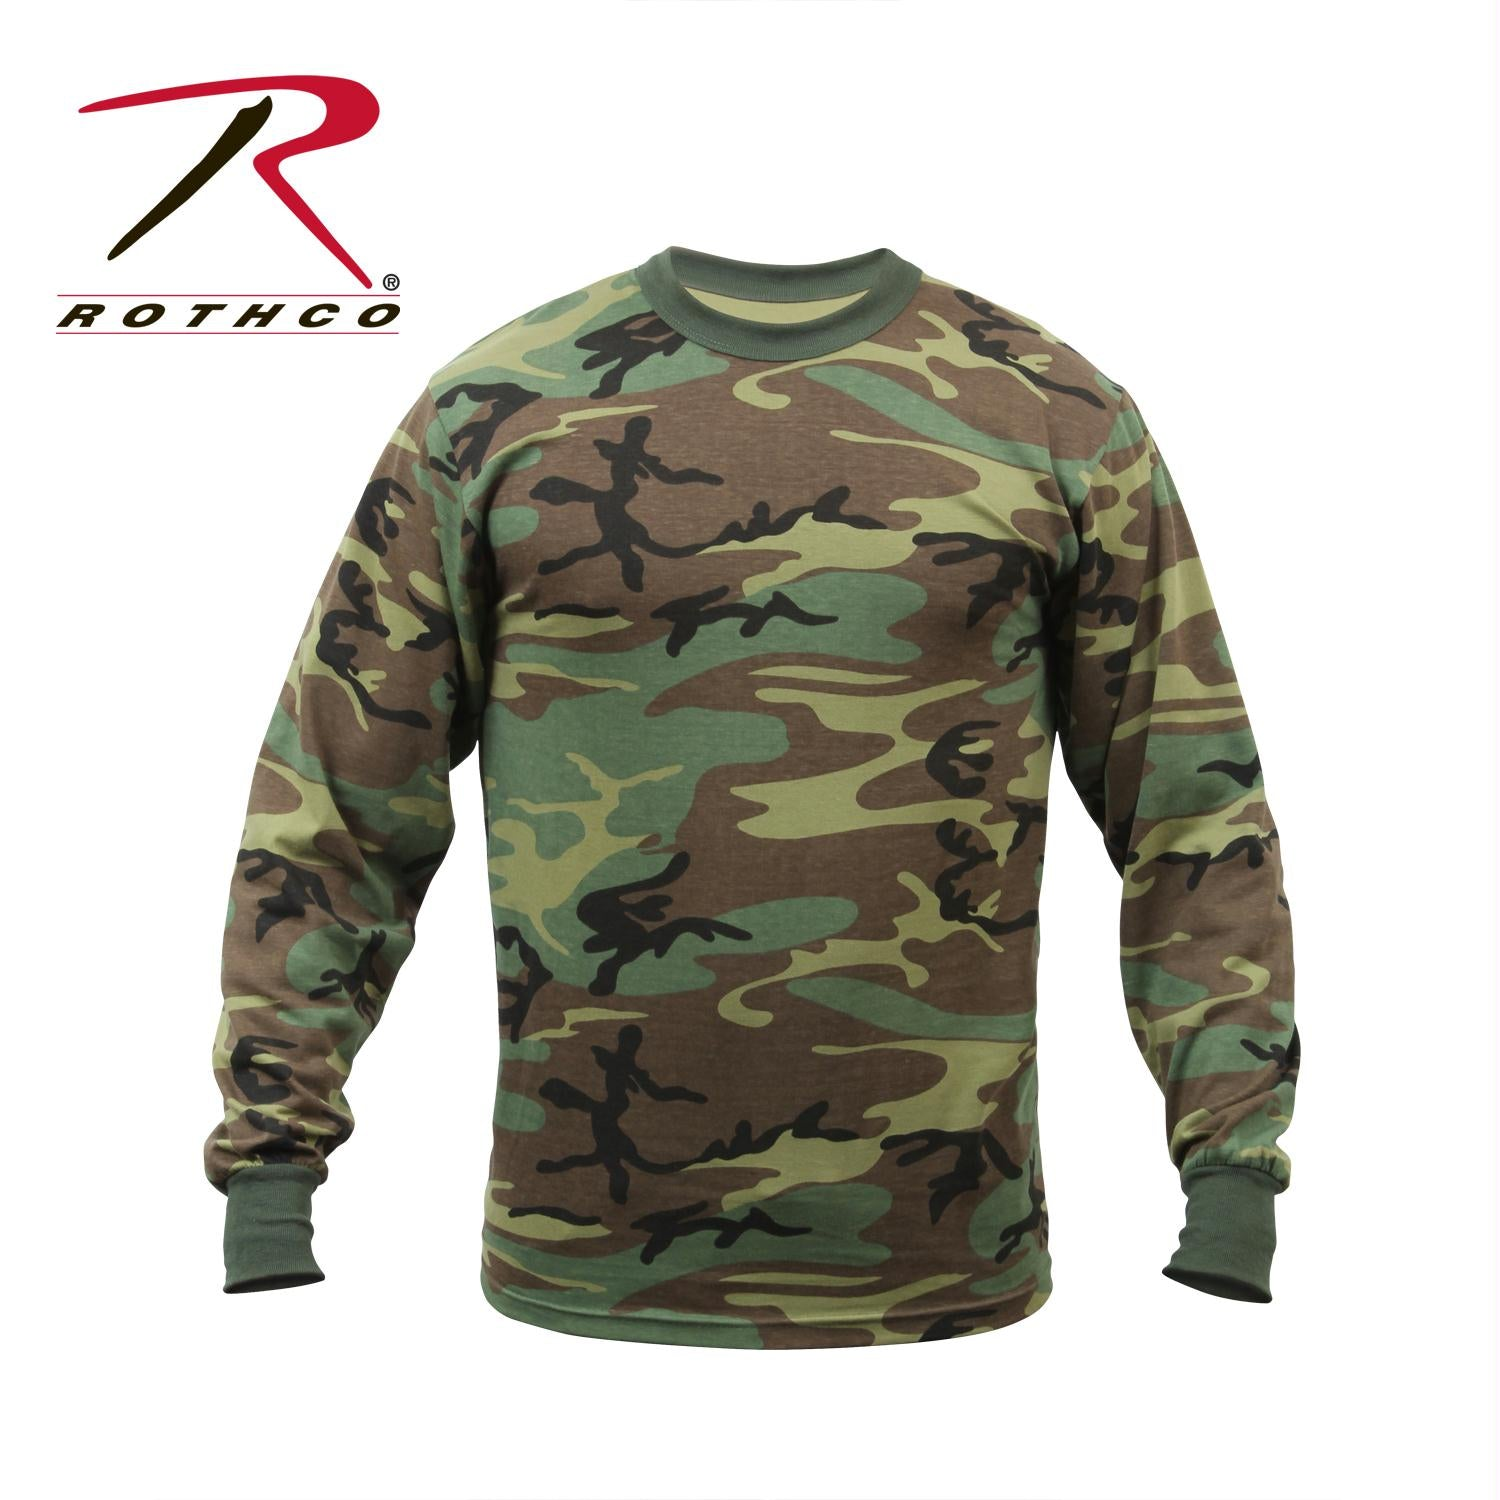 Rothco Long Sleeve Camo T-Shirt - Woodland Camo / M